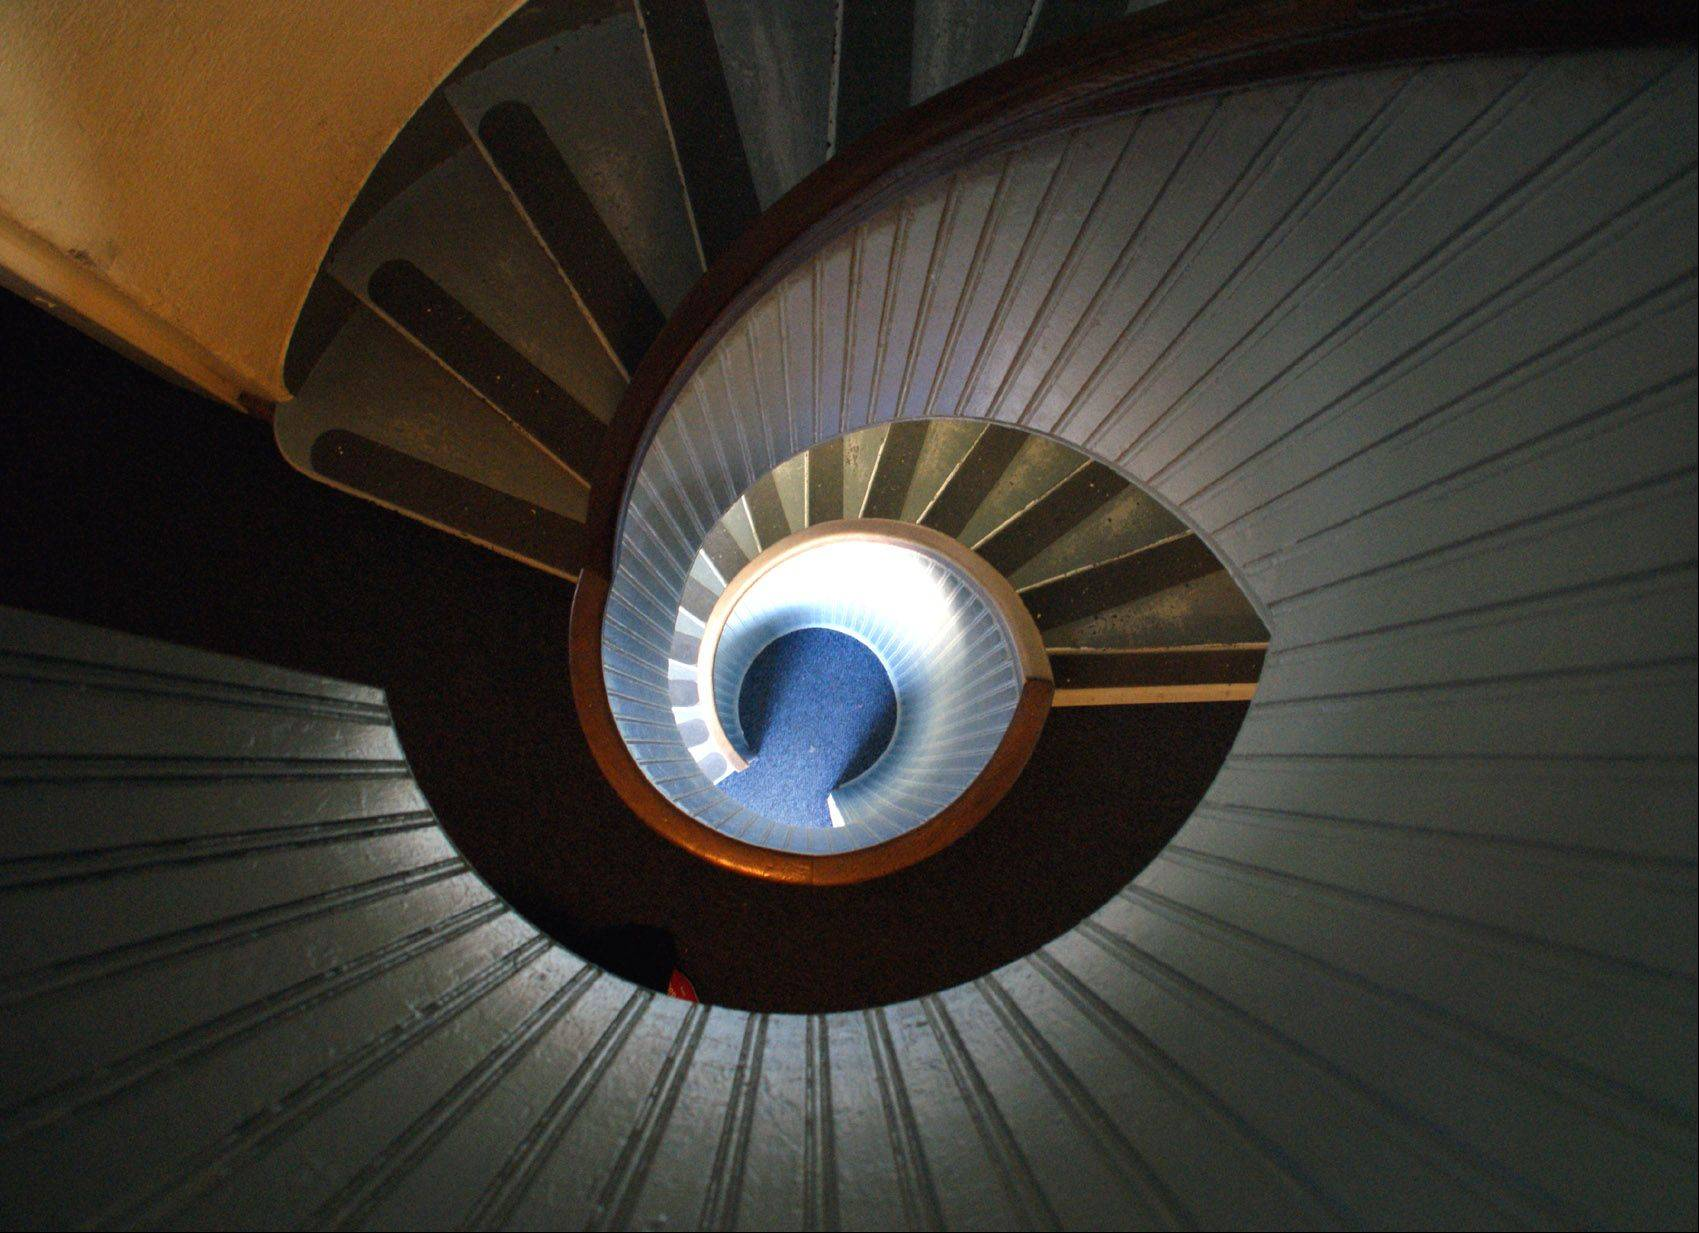 The lighthouse at Point Loma in San Diego was very scenic, but looking down its spiral staircase from upstairs inside gave a more interesting and disorienting impression.